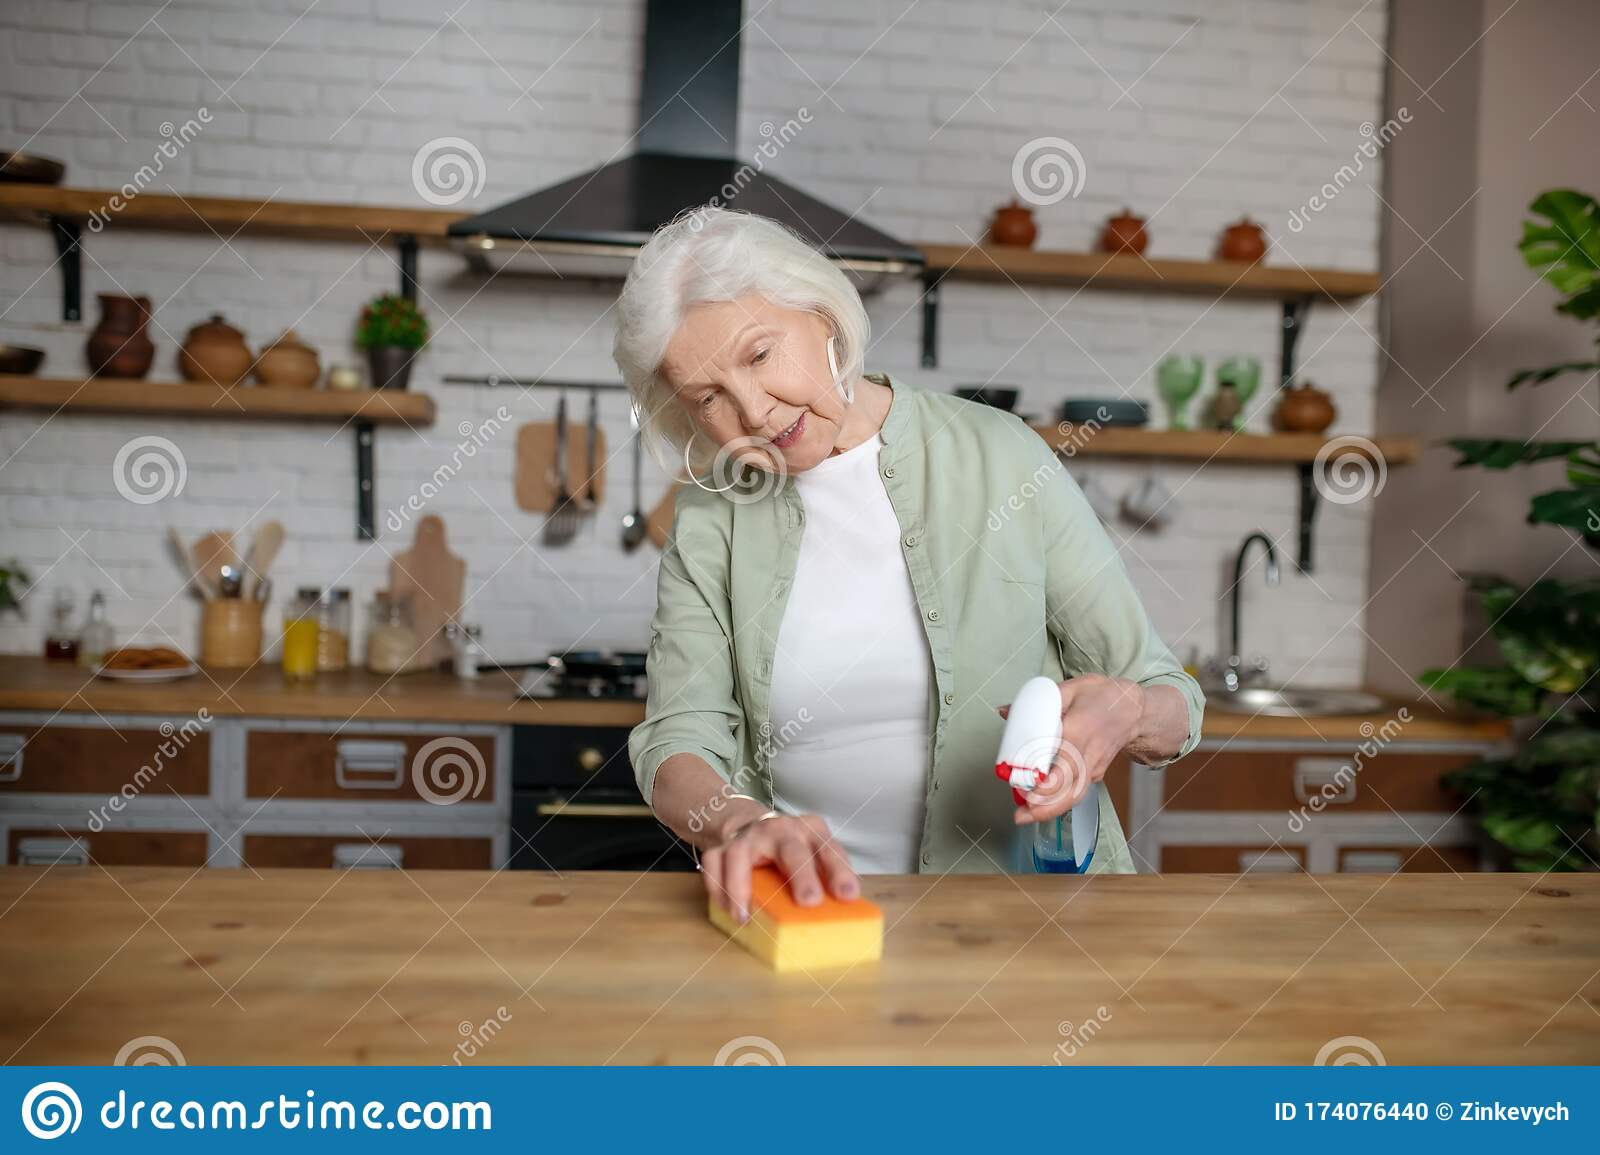 Elderly Woman Cleaning A Table In Her Kitchen Stock Photo ...